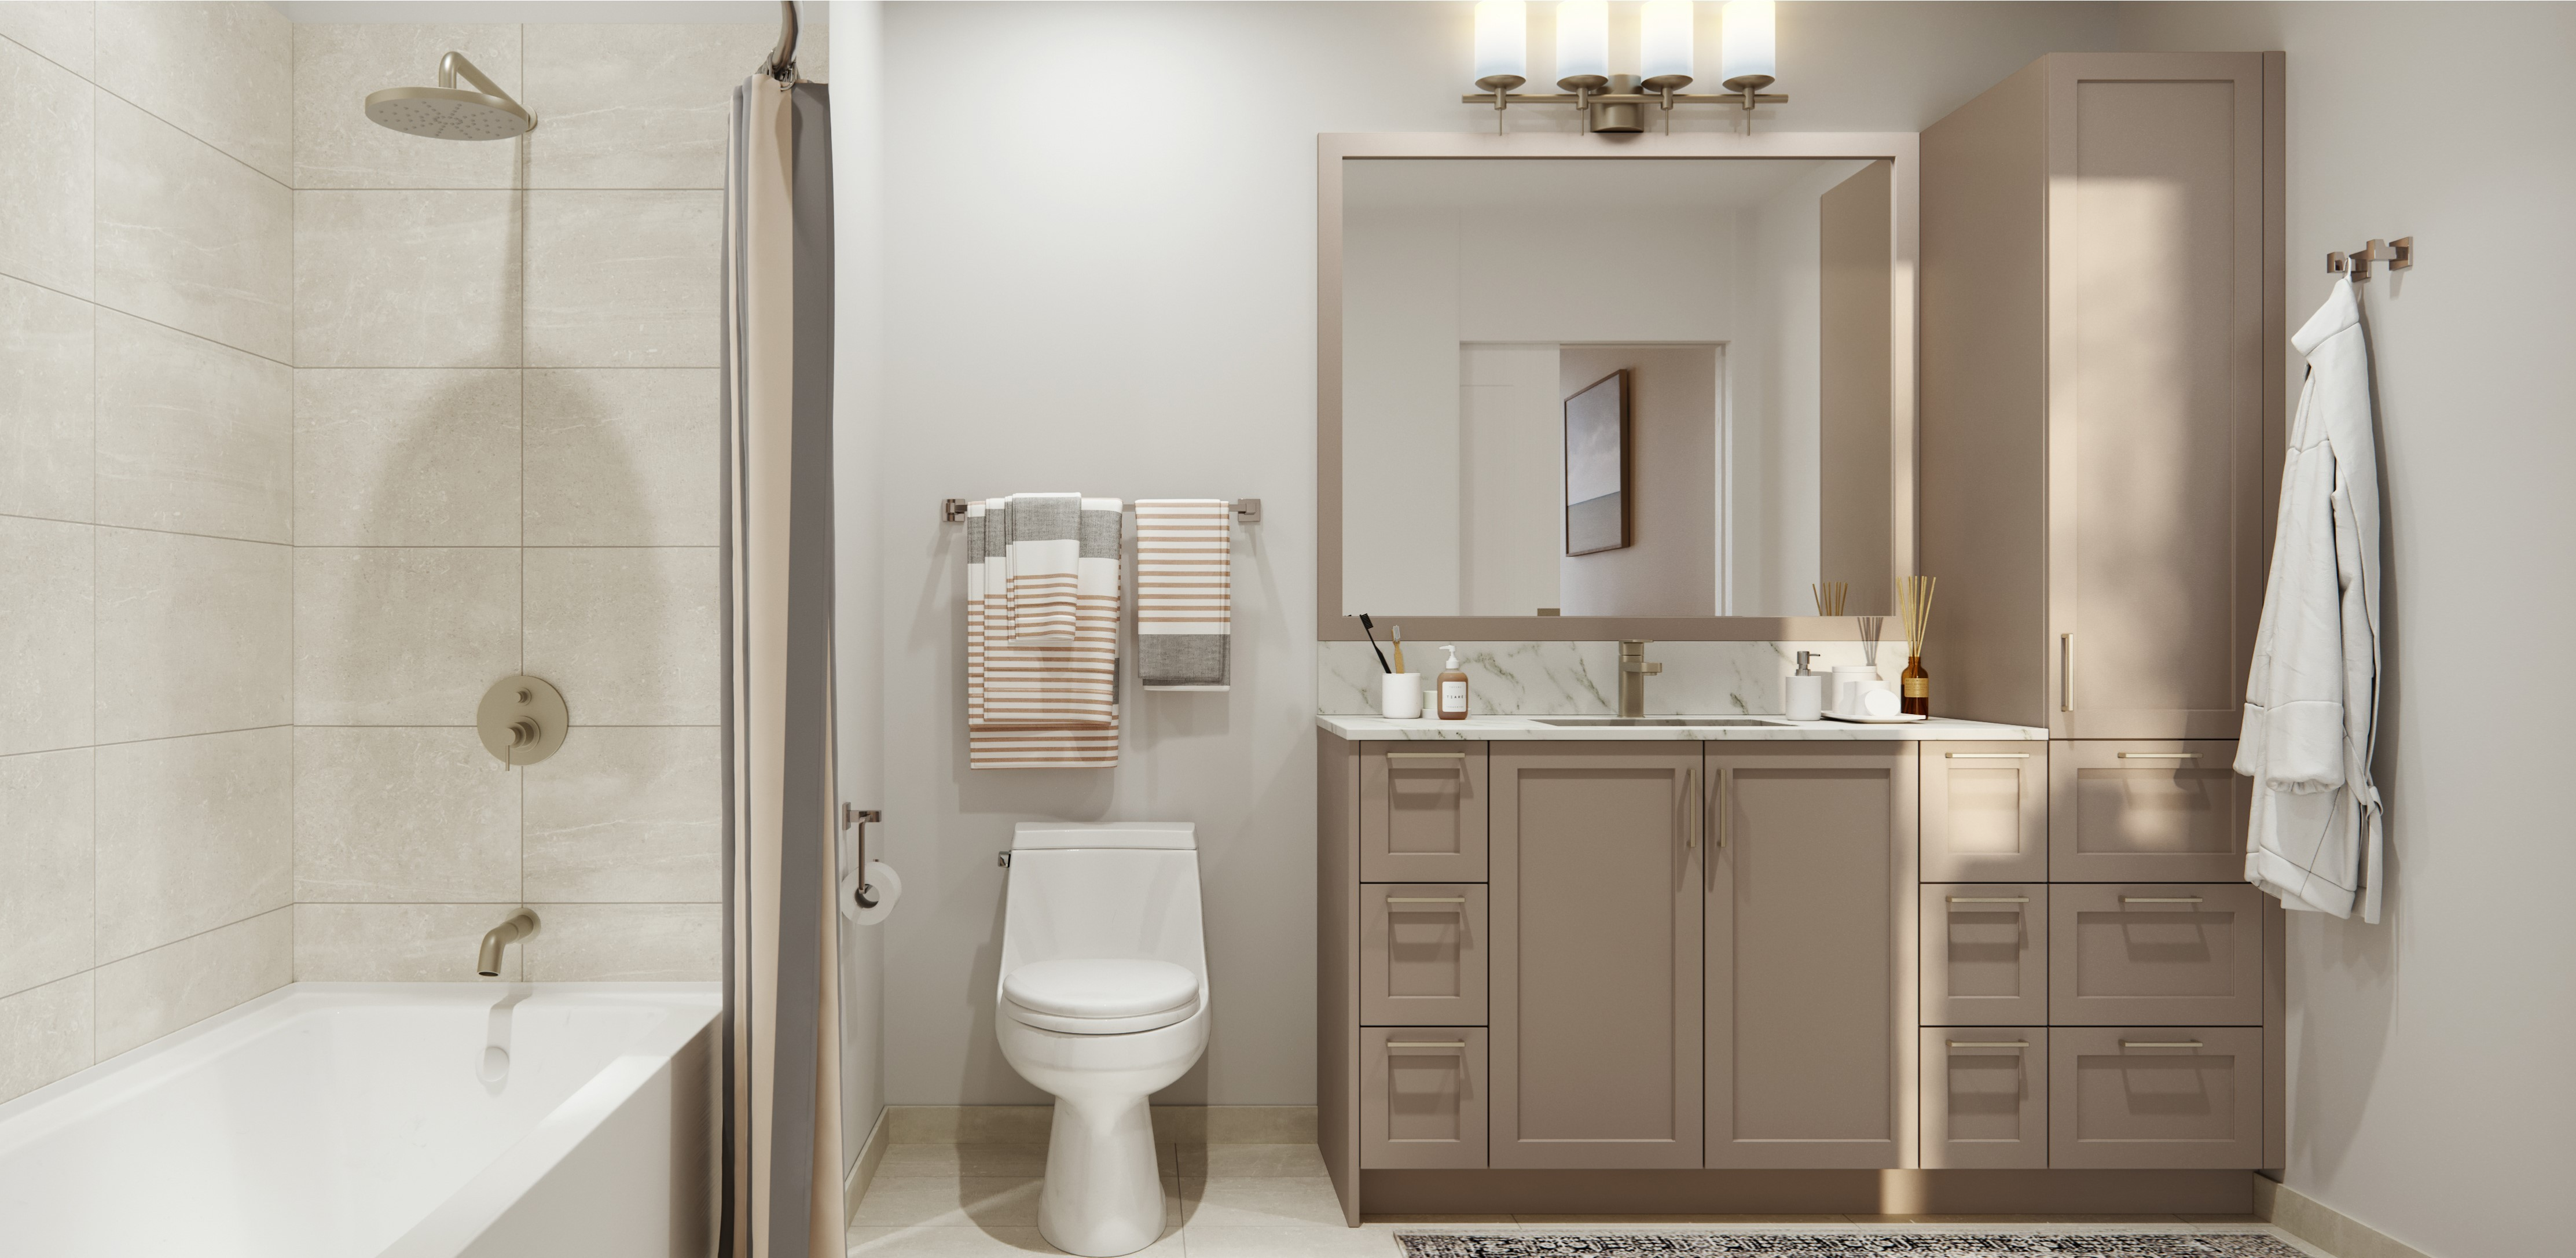 Kova S New Bath Kit Offers Builders Reduced Cost And Increased